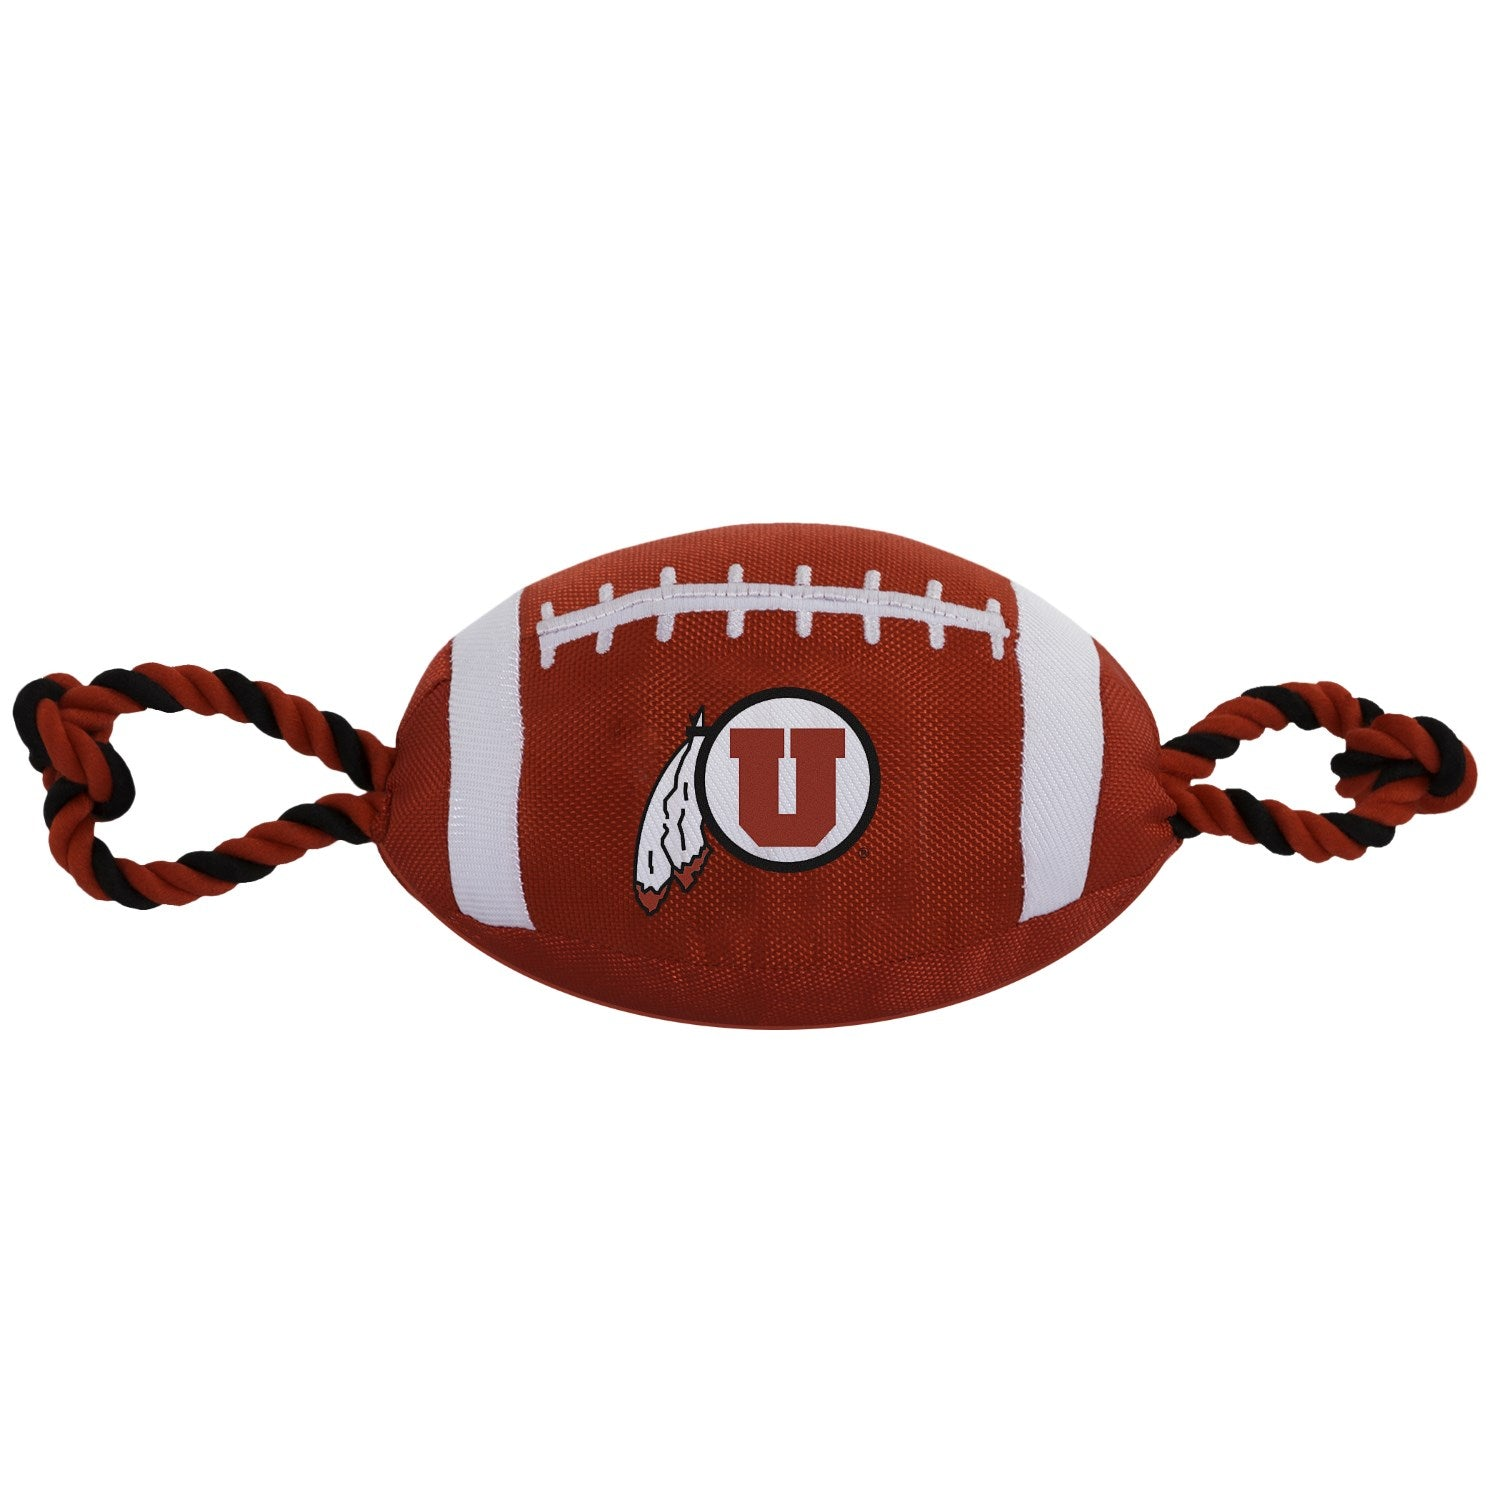 Utah Utes Pet Nylon Football - staygoldendoodle.com